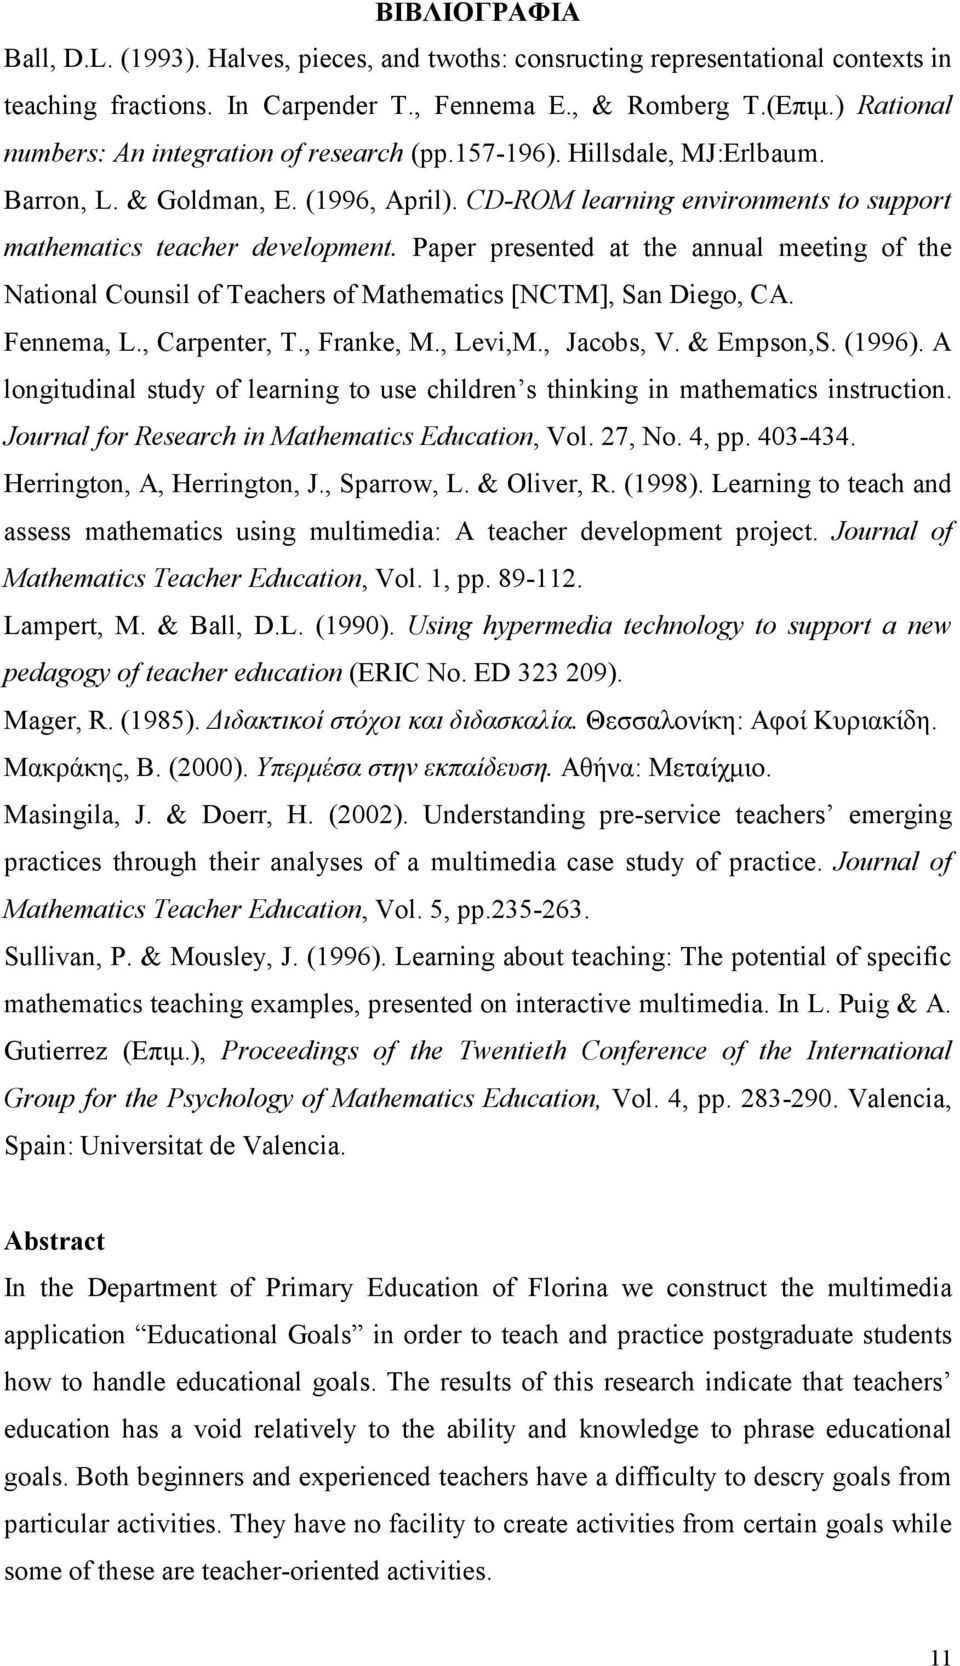 Paper presented at the annual meeting of the National Counsil of Teachers of Mathematics [NCTM], San Diego, CA. Fennema, L., Carpenter, T., Franke, M., Levi,M., Jacobs, V. & Empson,S. (1996).